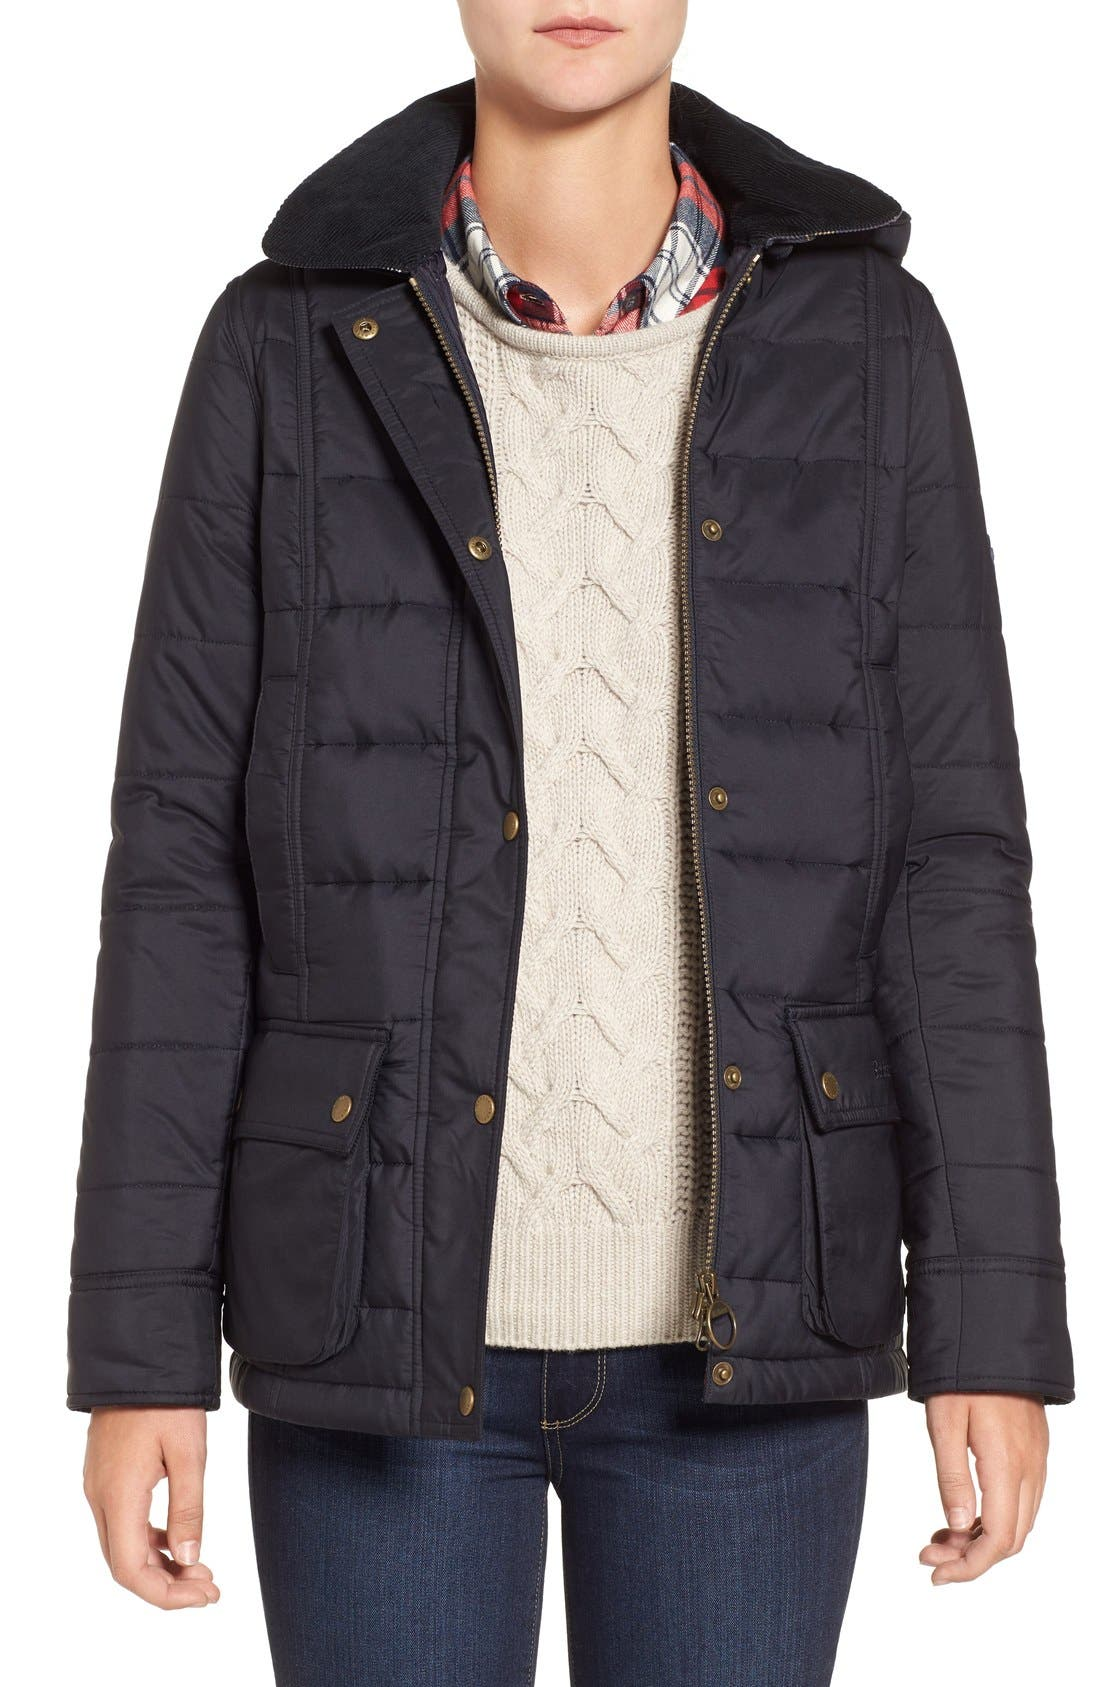 Alternate Image 1 Selected - Barbour 'Ilkley' Water Resistant Quilted Jacket